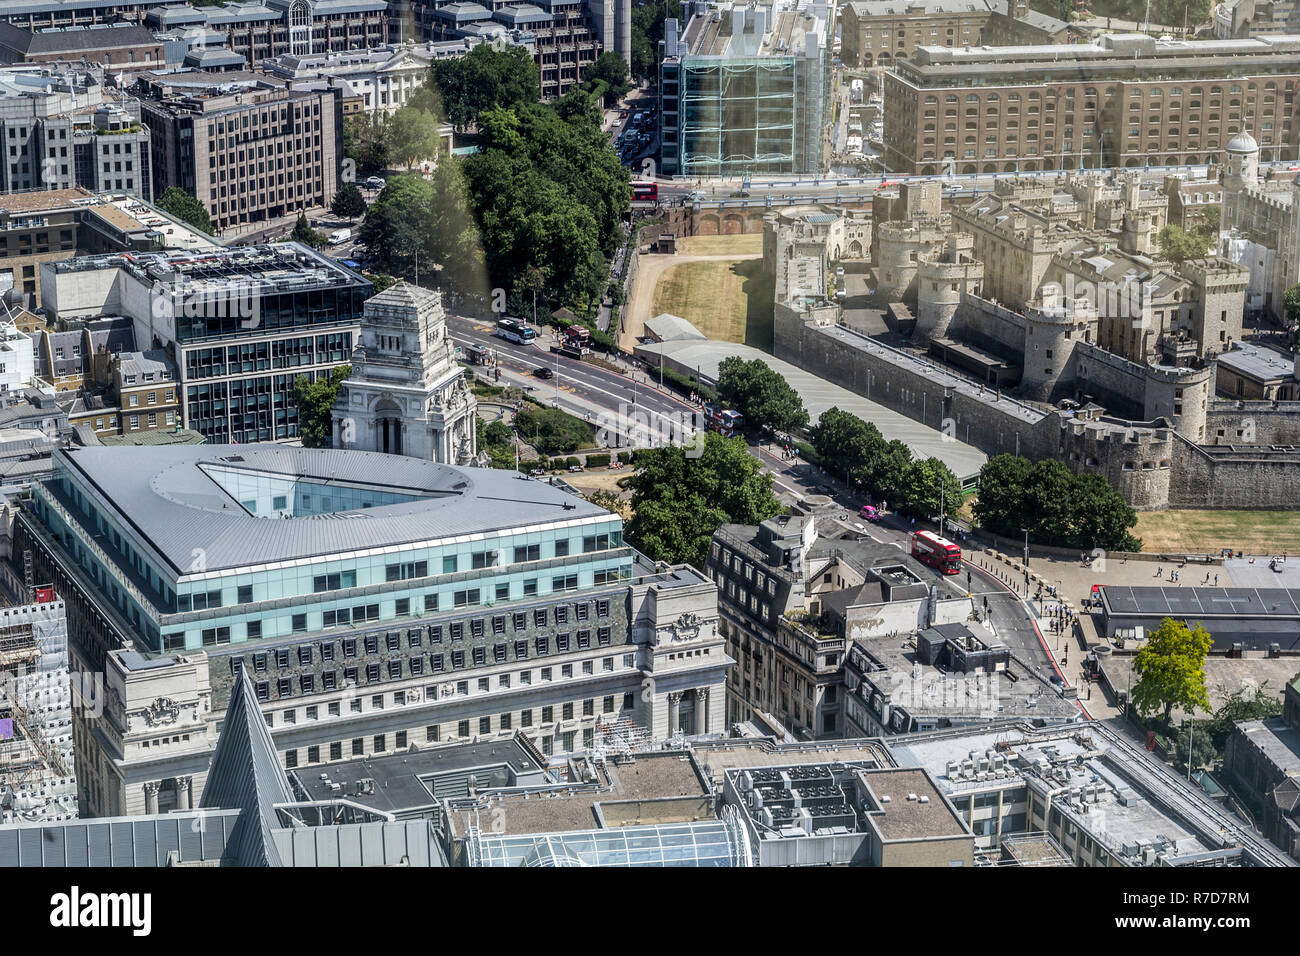 Beautiful panorama of London city taken from above, United Kingdom - Stock Image